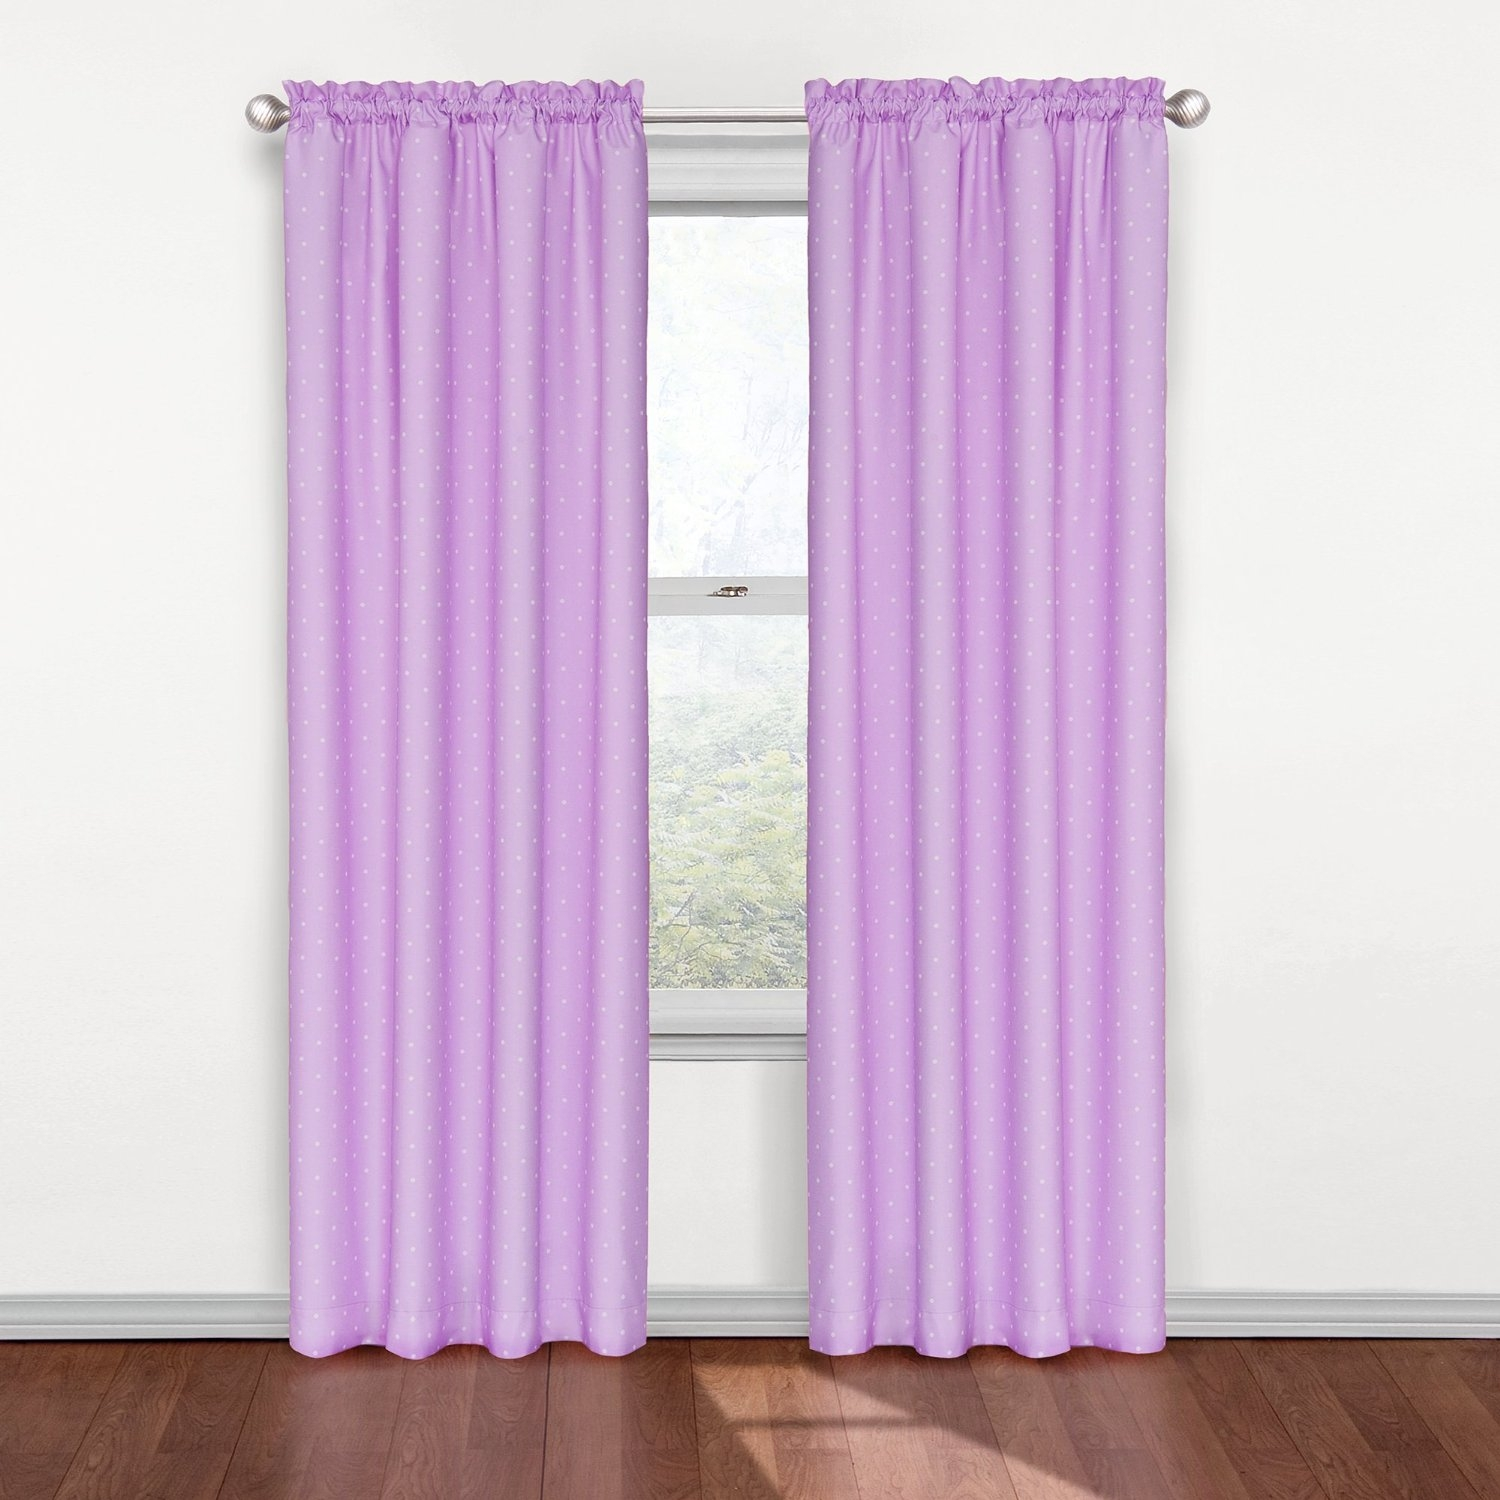 Ba Nursery Best Blackout Curtains For Window Decorations For Purple Curtains For Kids Room (Image 1 of 25)